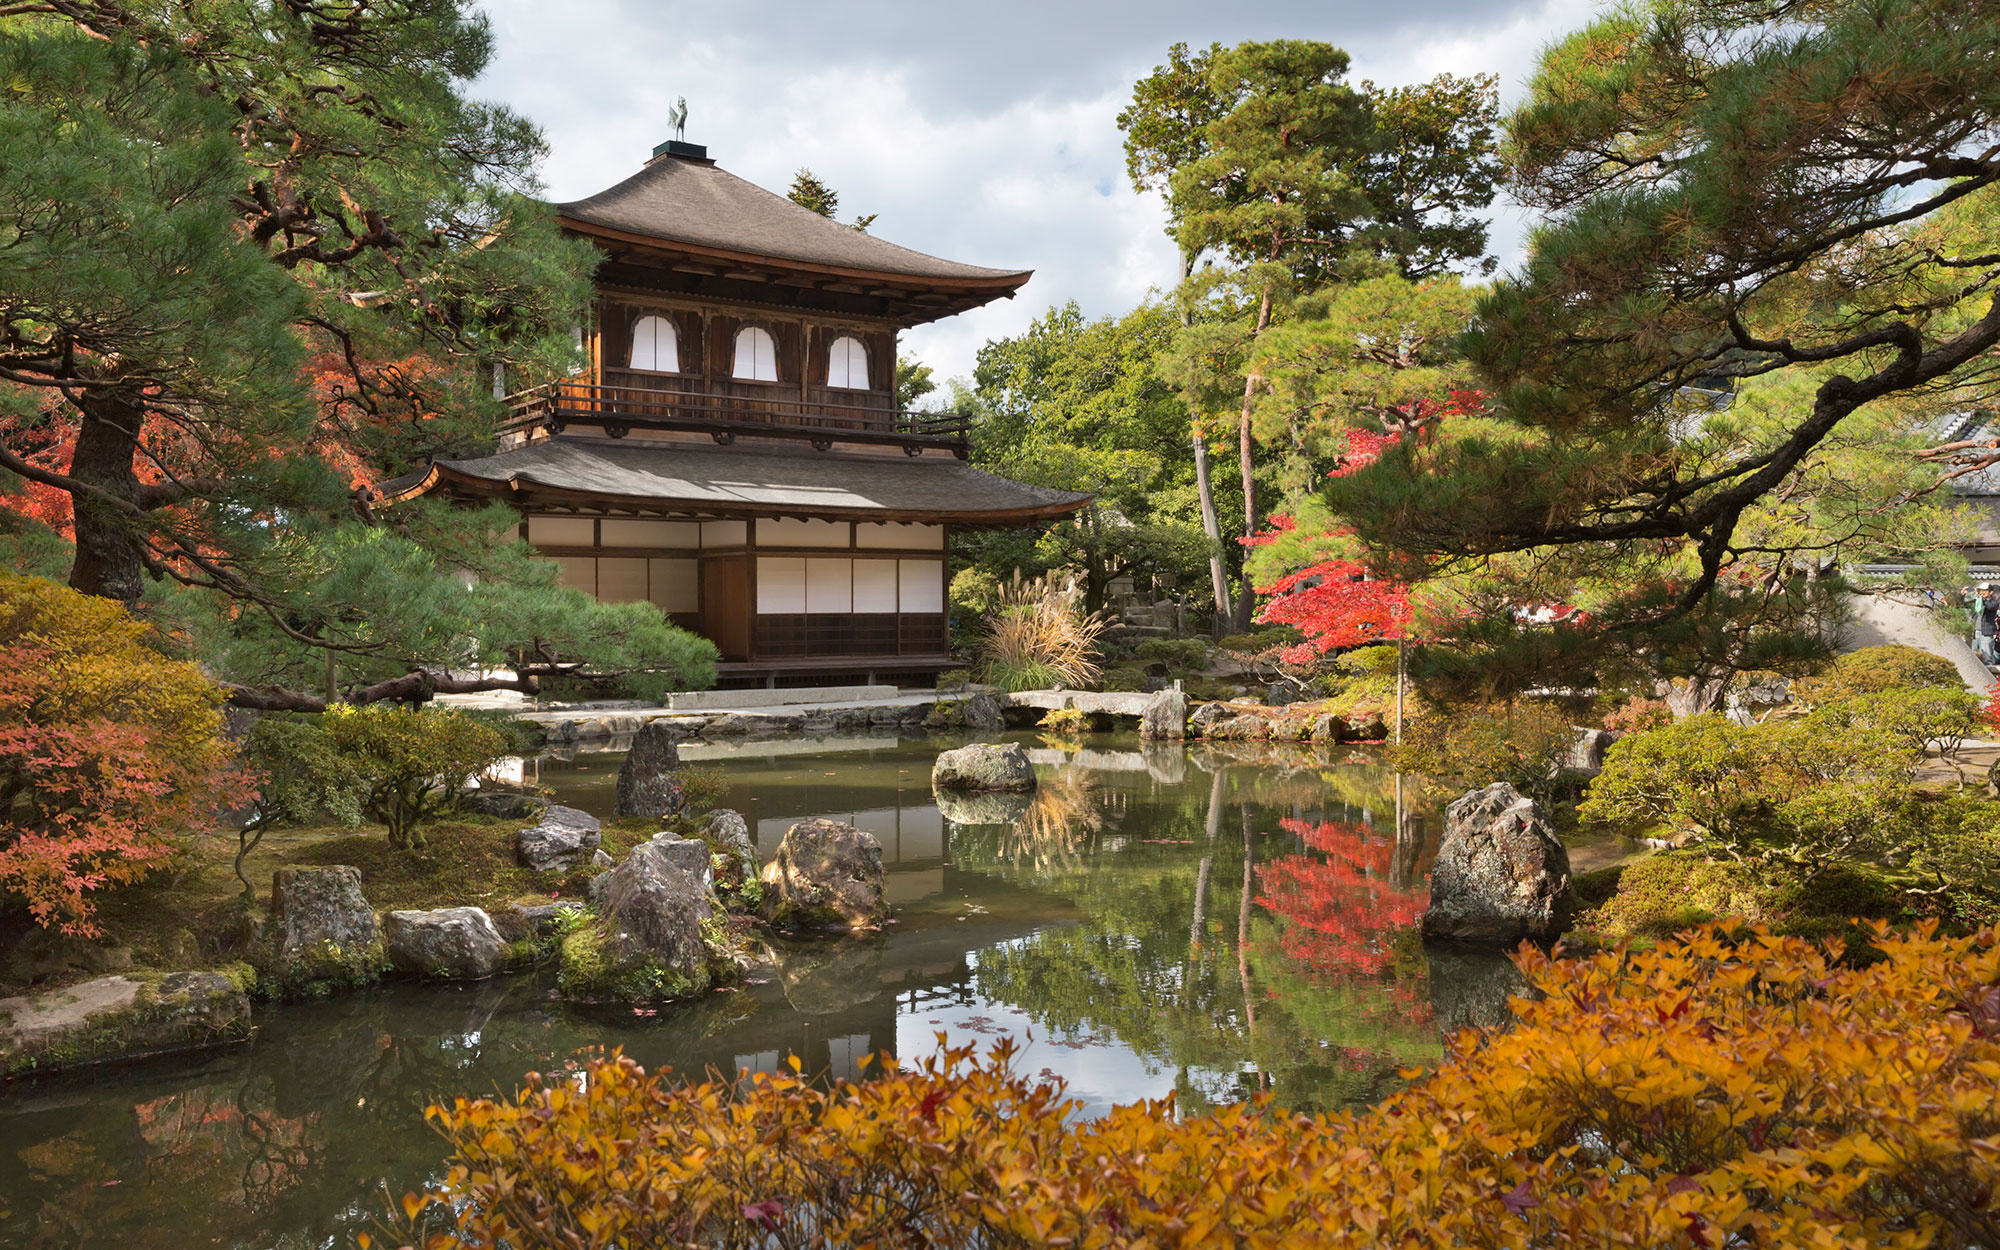 Japanese Temples - The Silver Pavilion